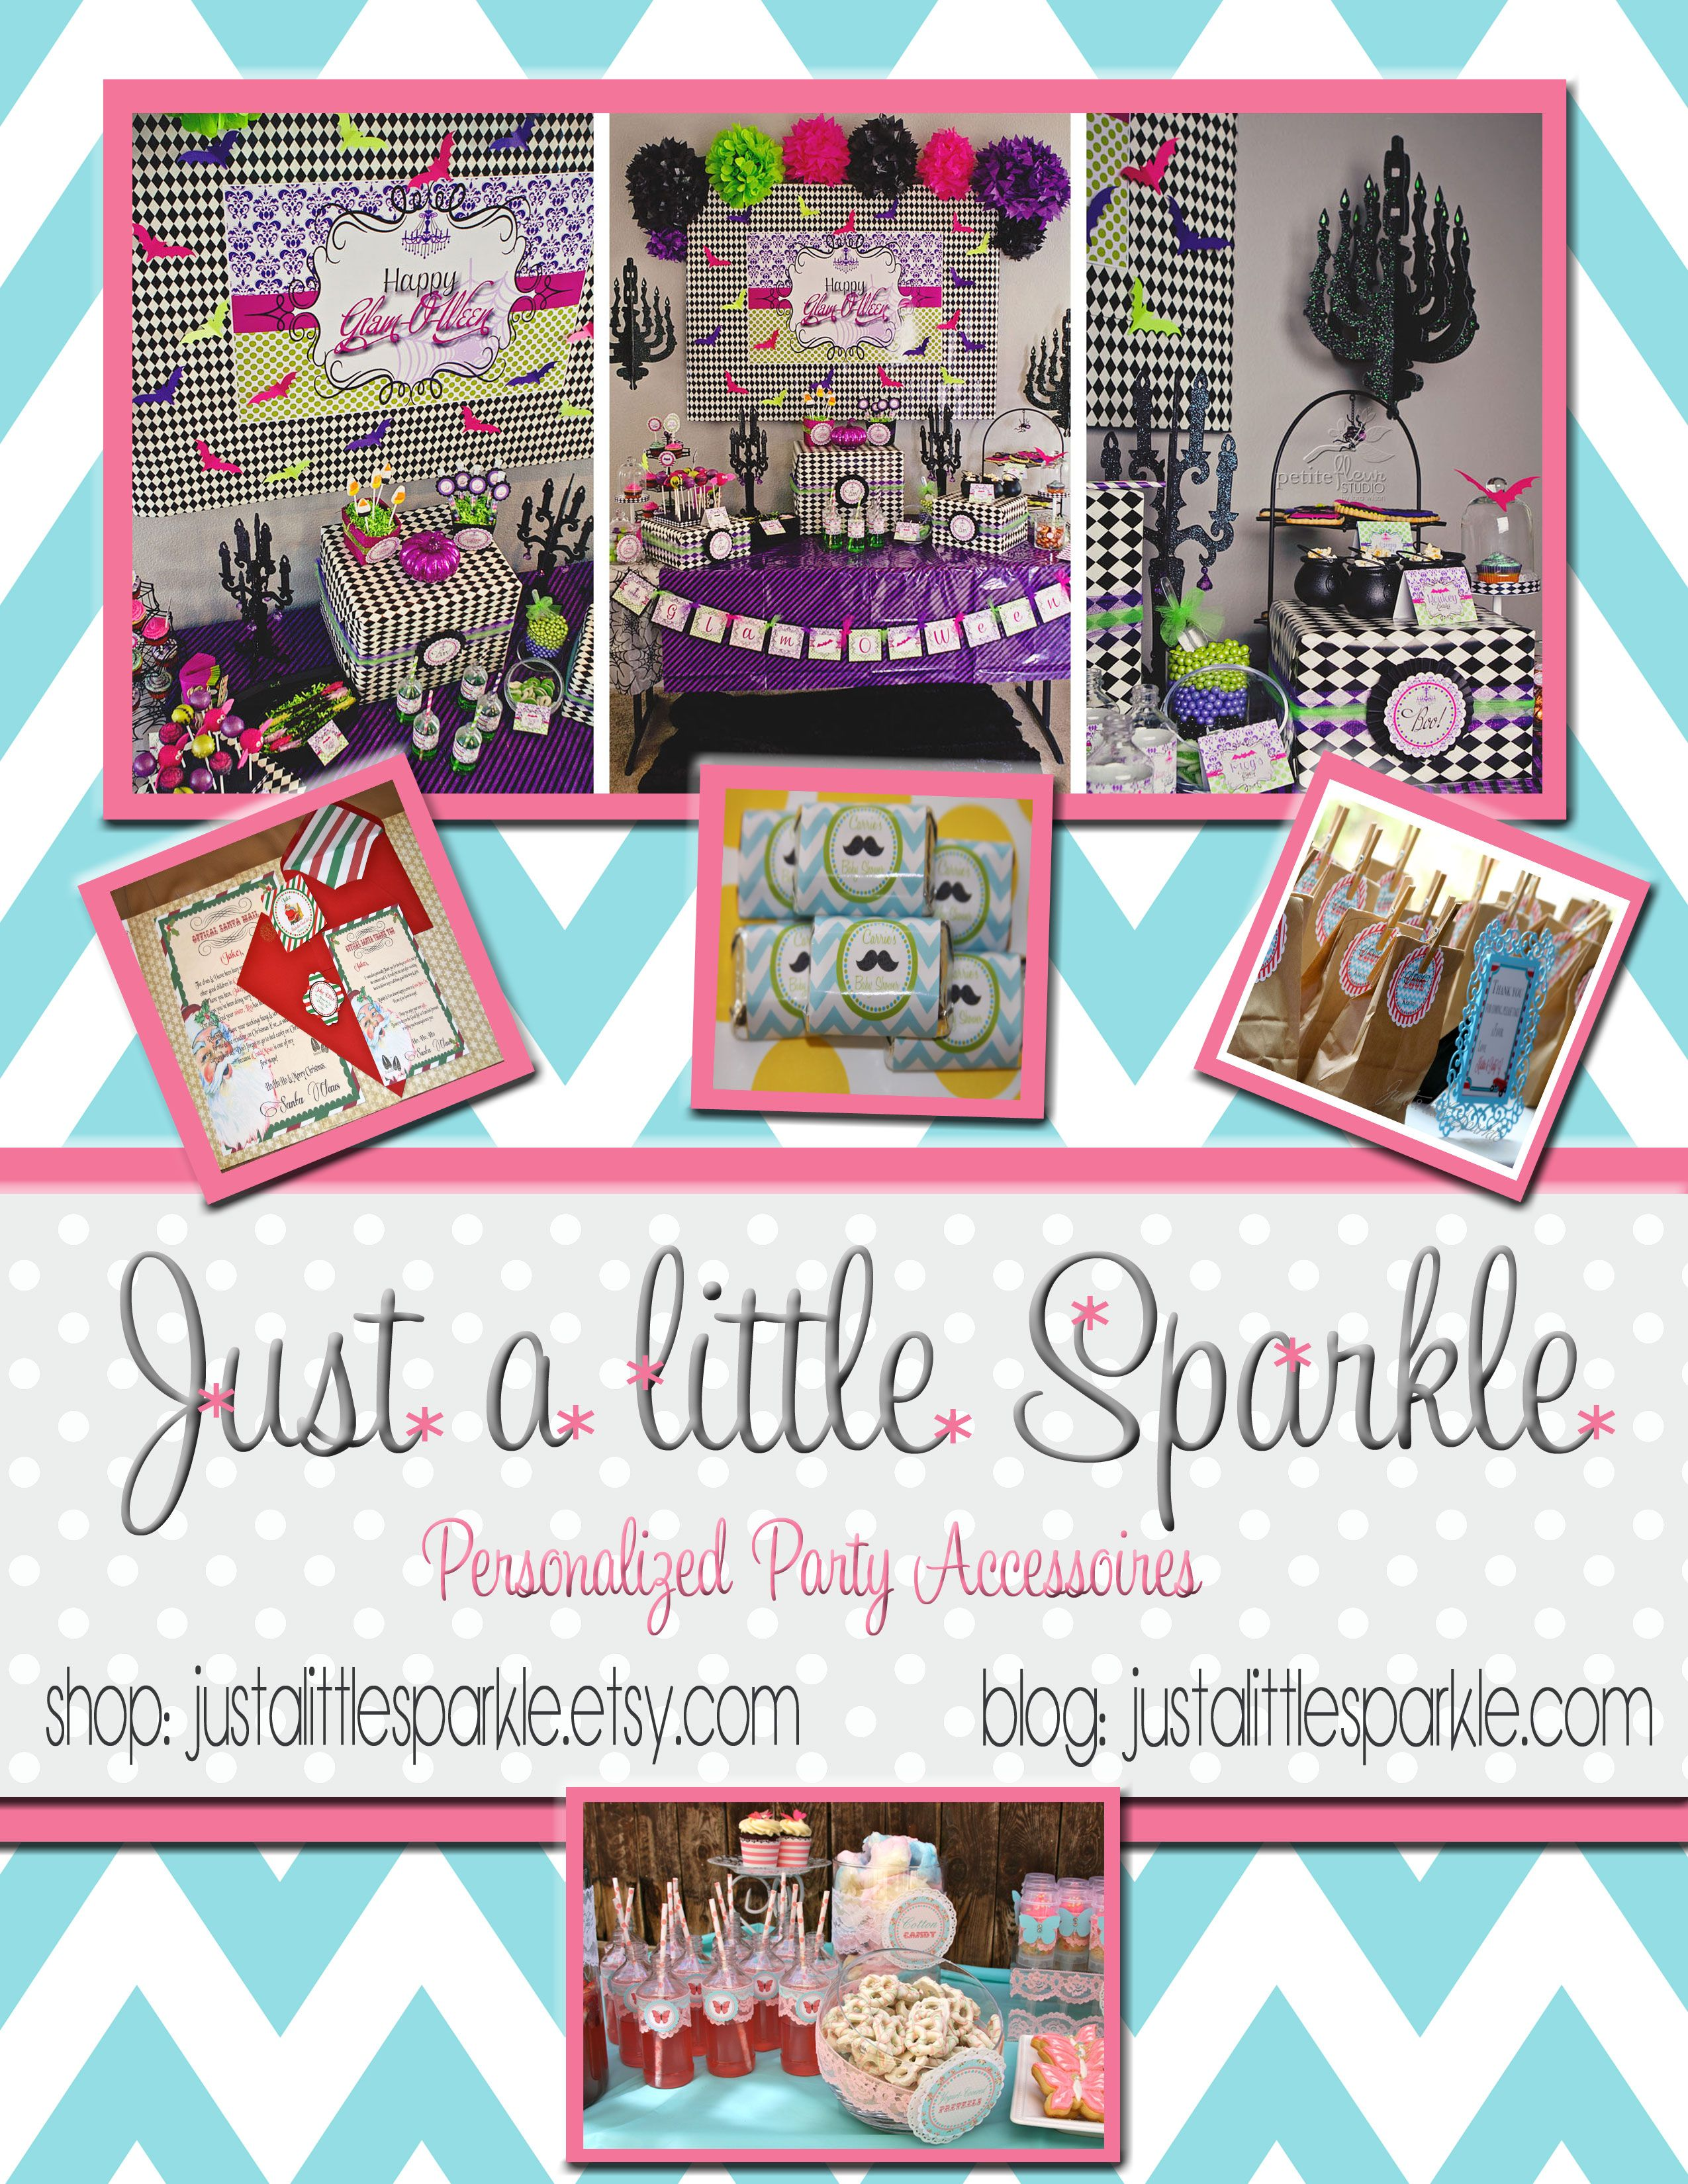 Just a little Sparkle is donating a Party theme of winner's choice in the shop: 1 set of invites (10), 1 set of Cupcake toppers (24), 1 set of Centerpiece Flags (10). This is over a $55.00 value!  https://www.facebook.com/pages/Just-a-little-Sparkle/206087286078459?group_id=0  Shop: www.justalittlesparkle.etsy.com